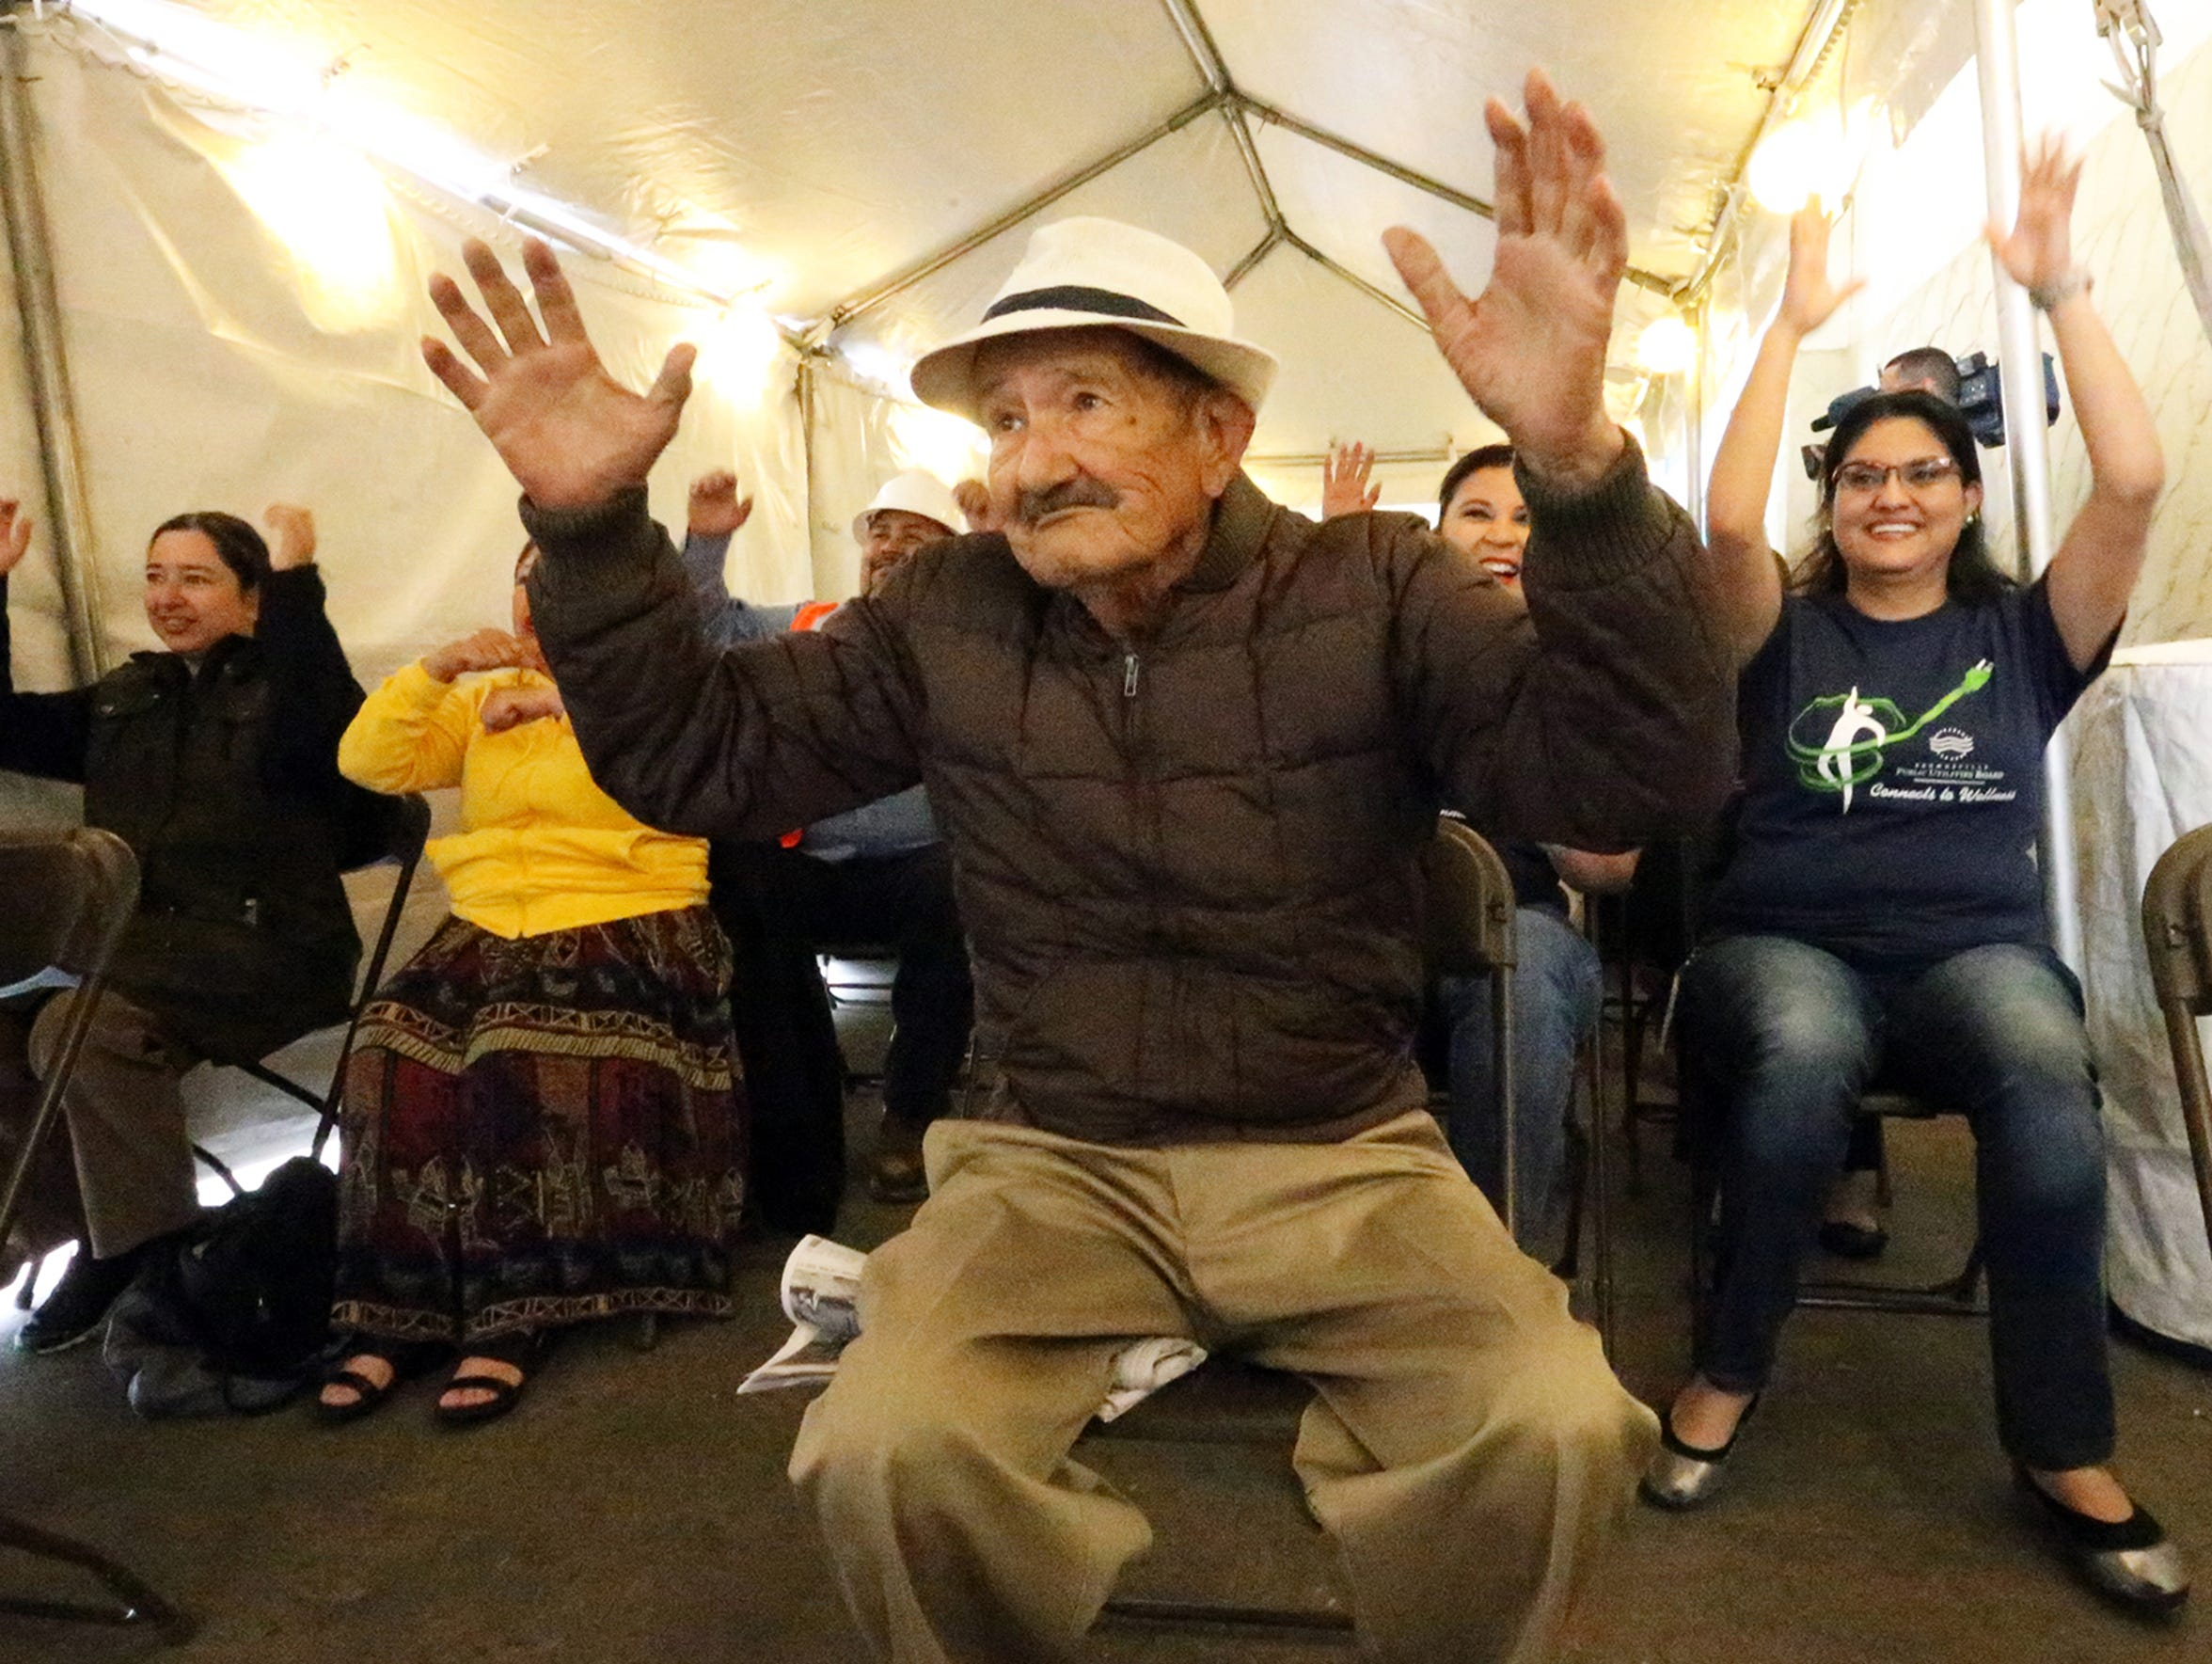 Ruperto Pedraza, 82, takes part in chair aerobics in